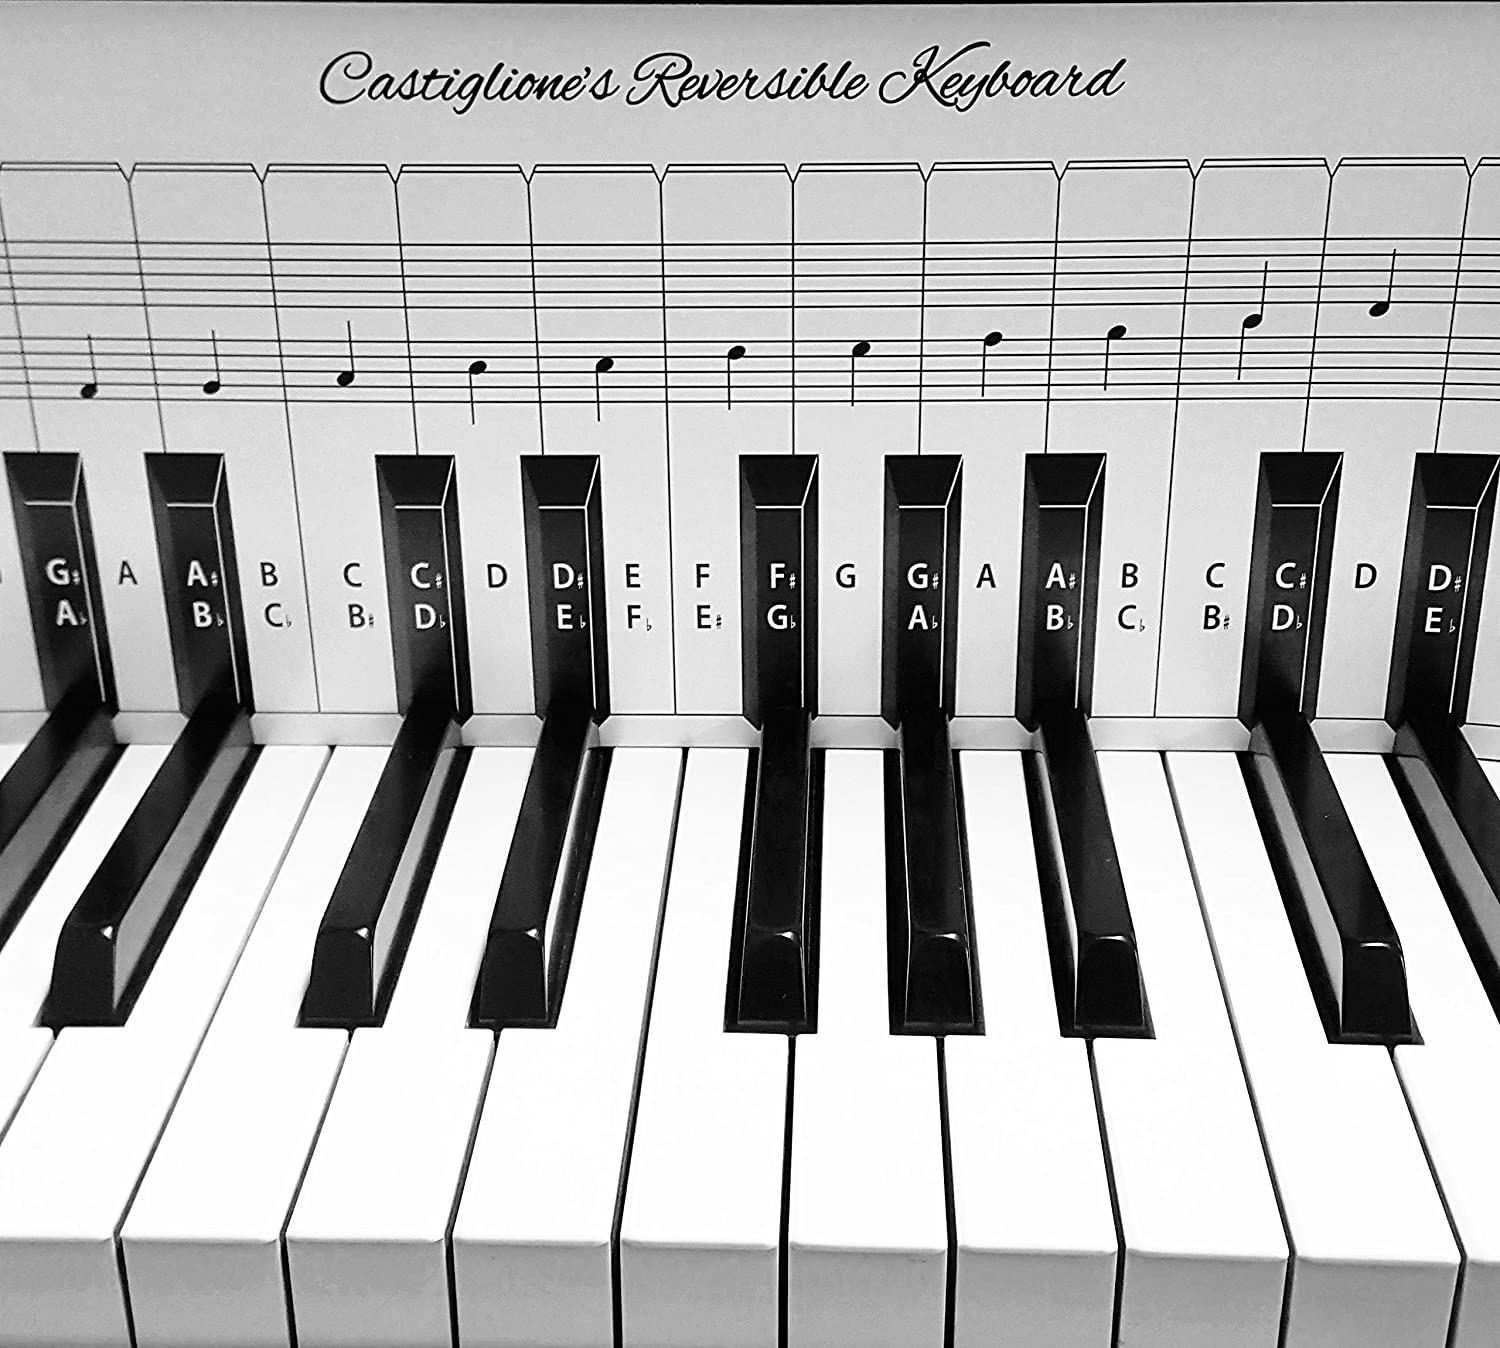 Amazon practice keyboard note chart for behind the piano amazon practice keyboard note chart for behind the piano keys musical instruments hexwebz Choice Image